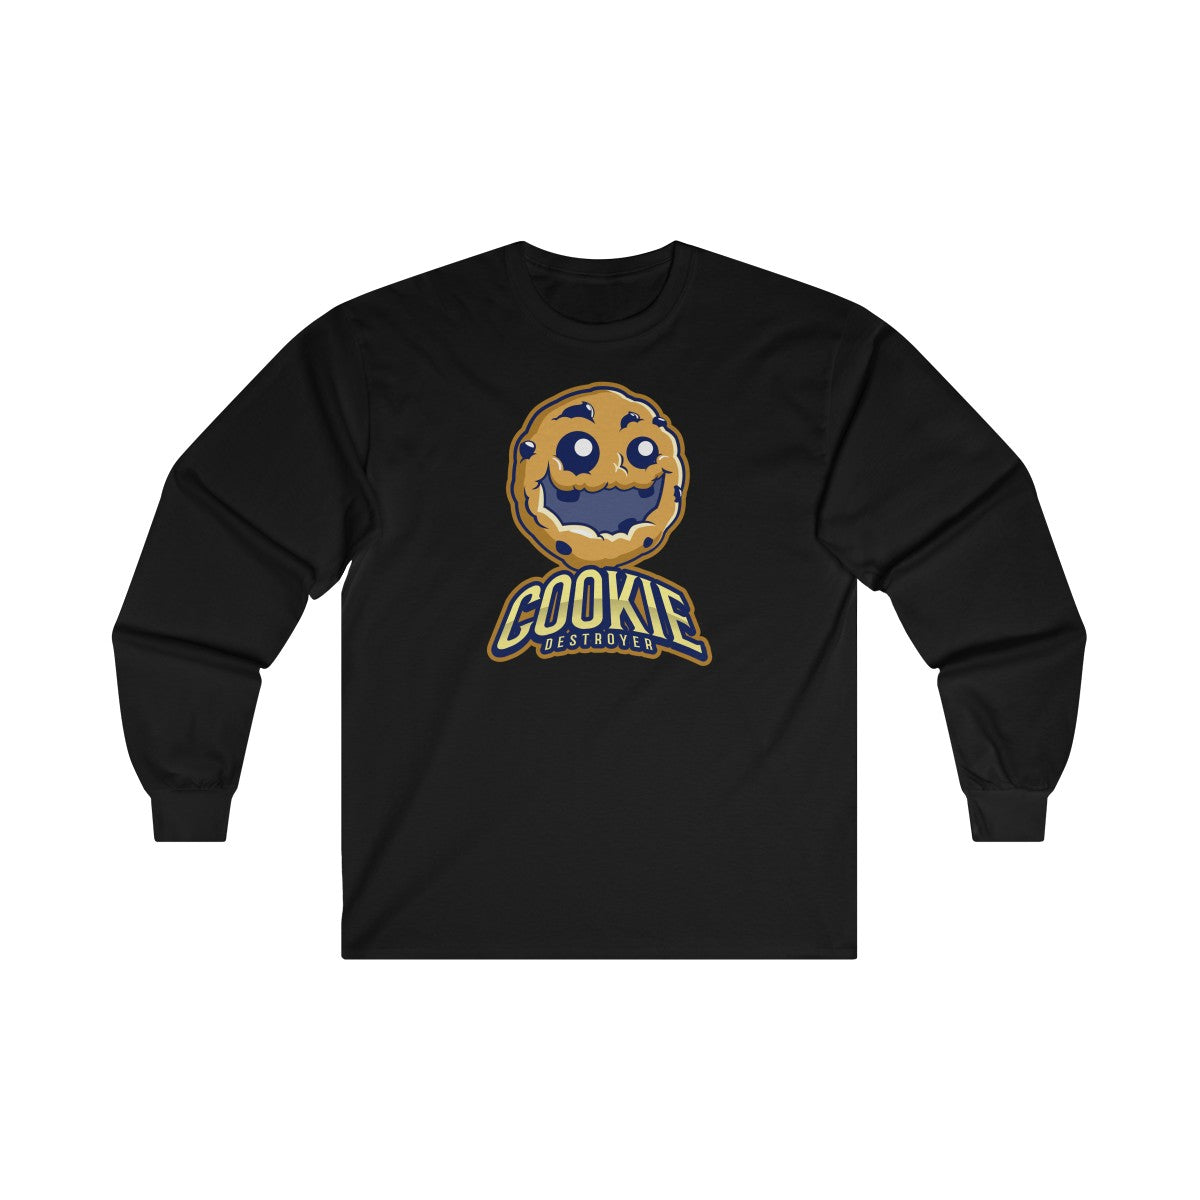 Cookie Destroyer Danucd Long Sleeve Tee